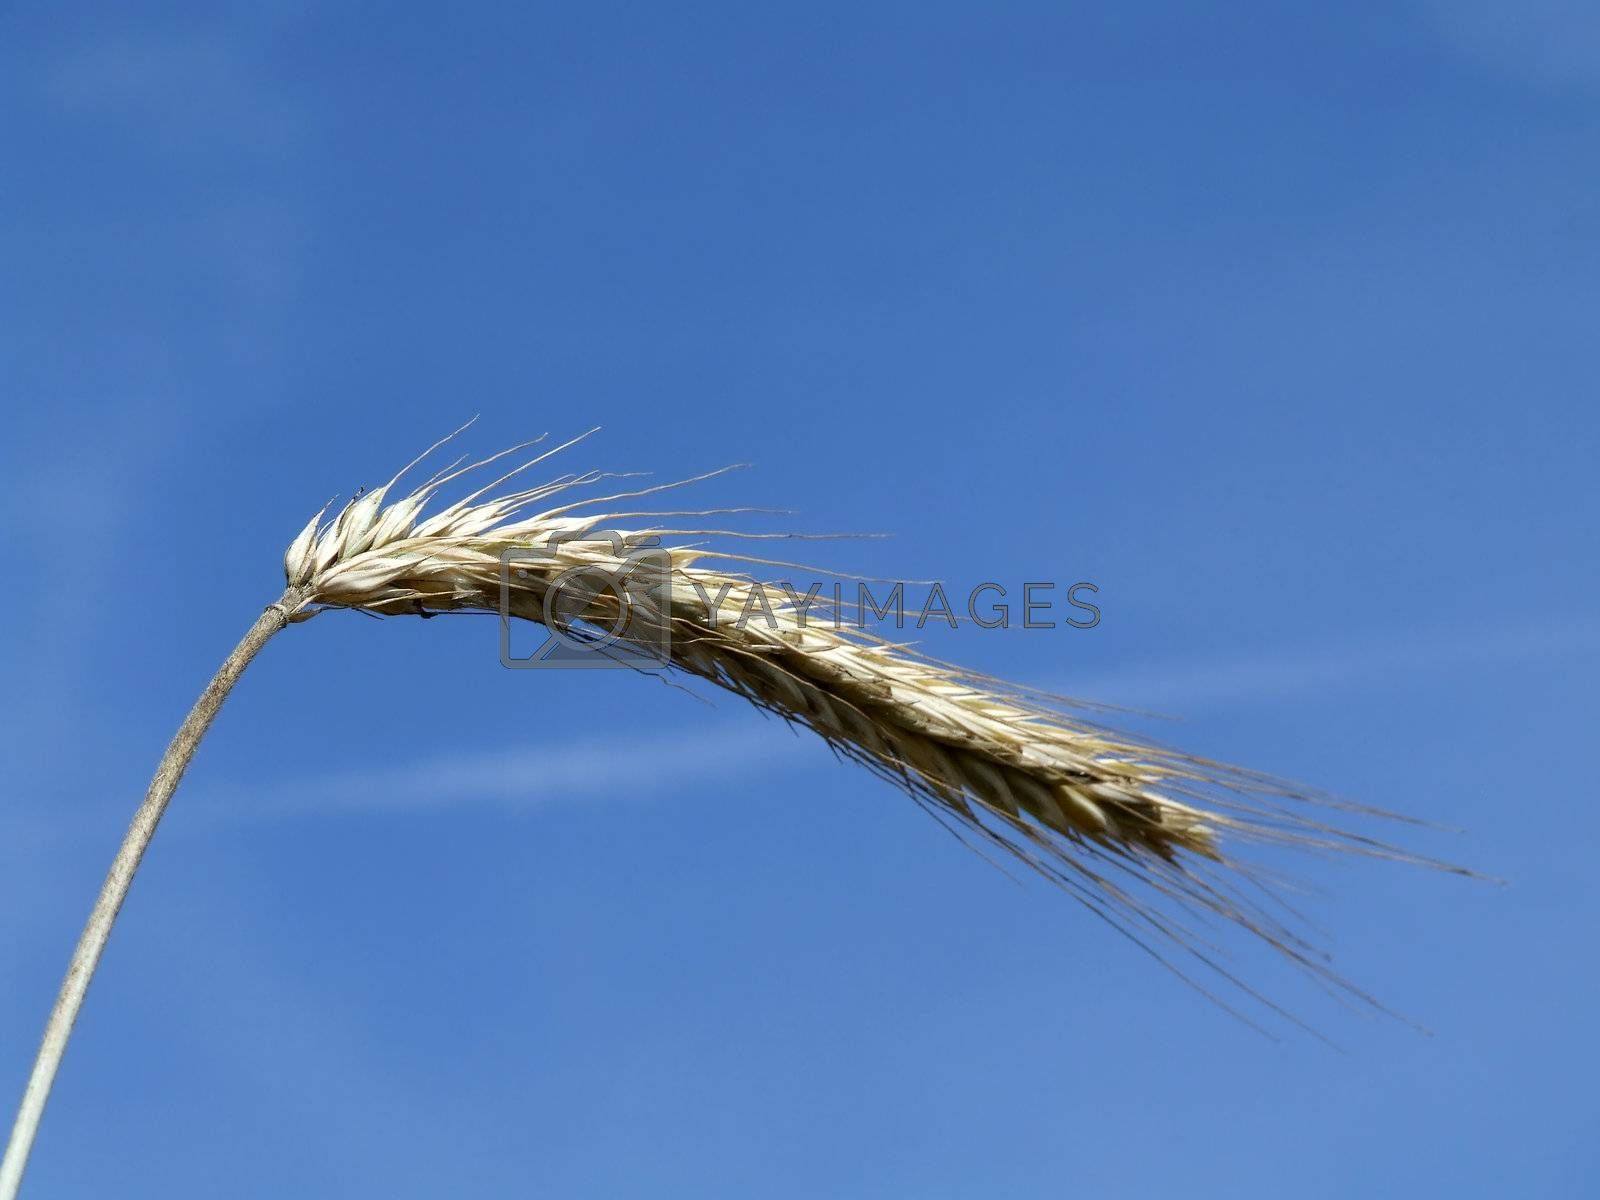 A photo of wheat in summertime